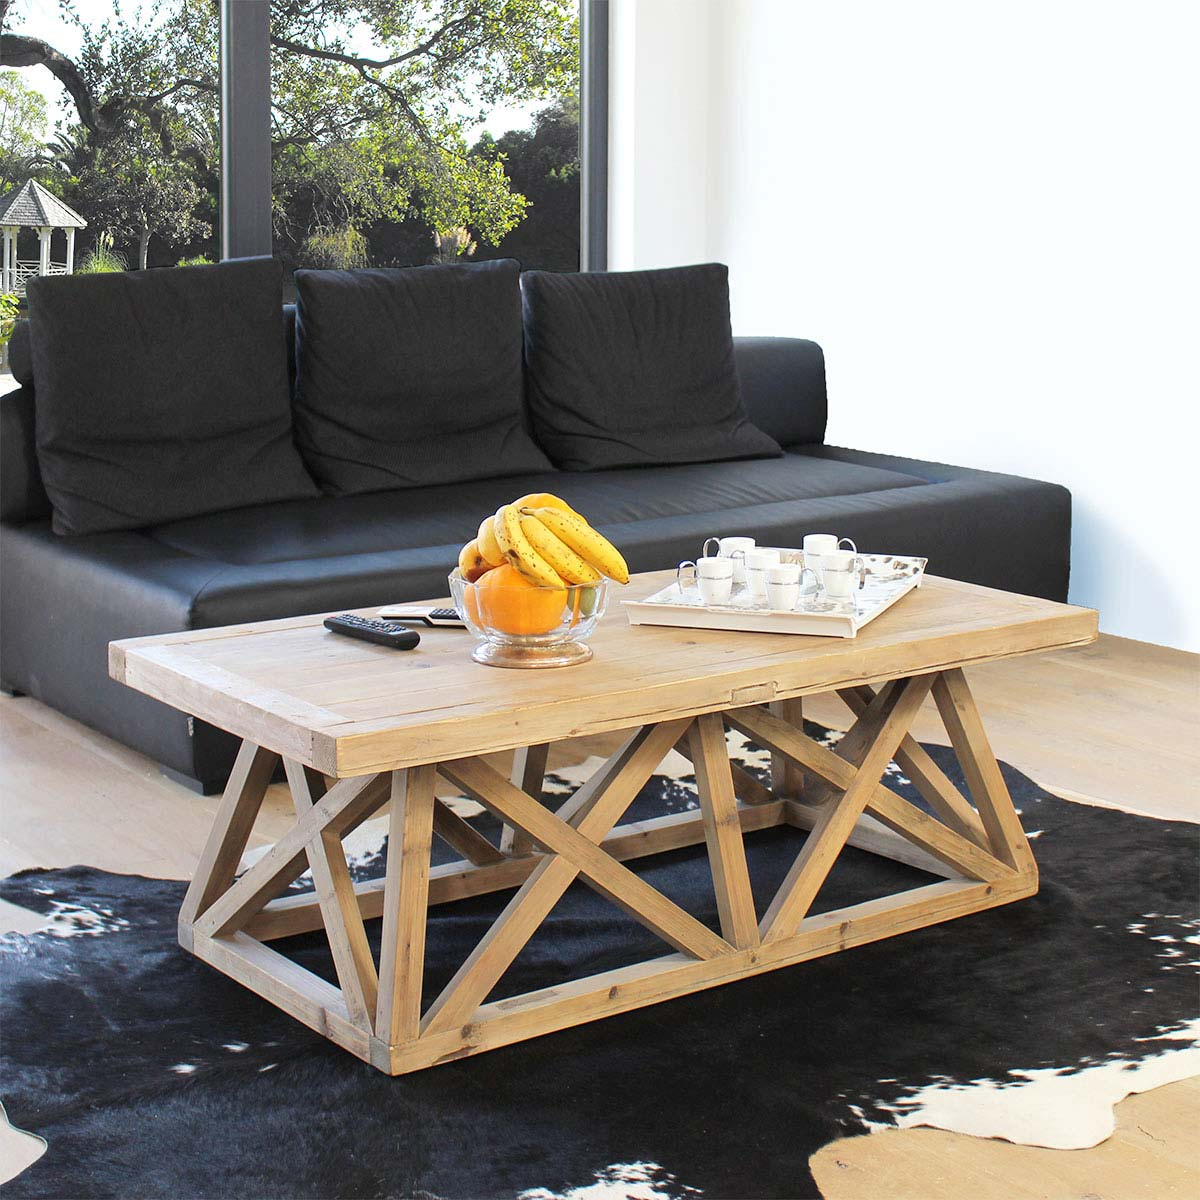 table basse avec plateau et pieds en bois. Black Bedroom Furniture Sets. Home Design Ideas